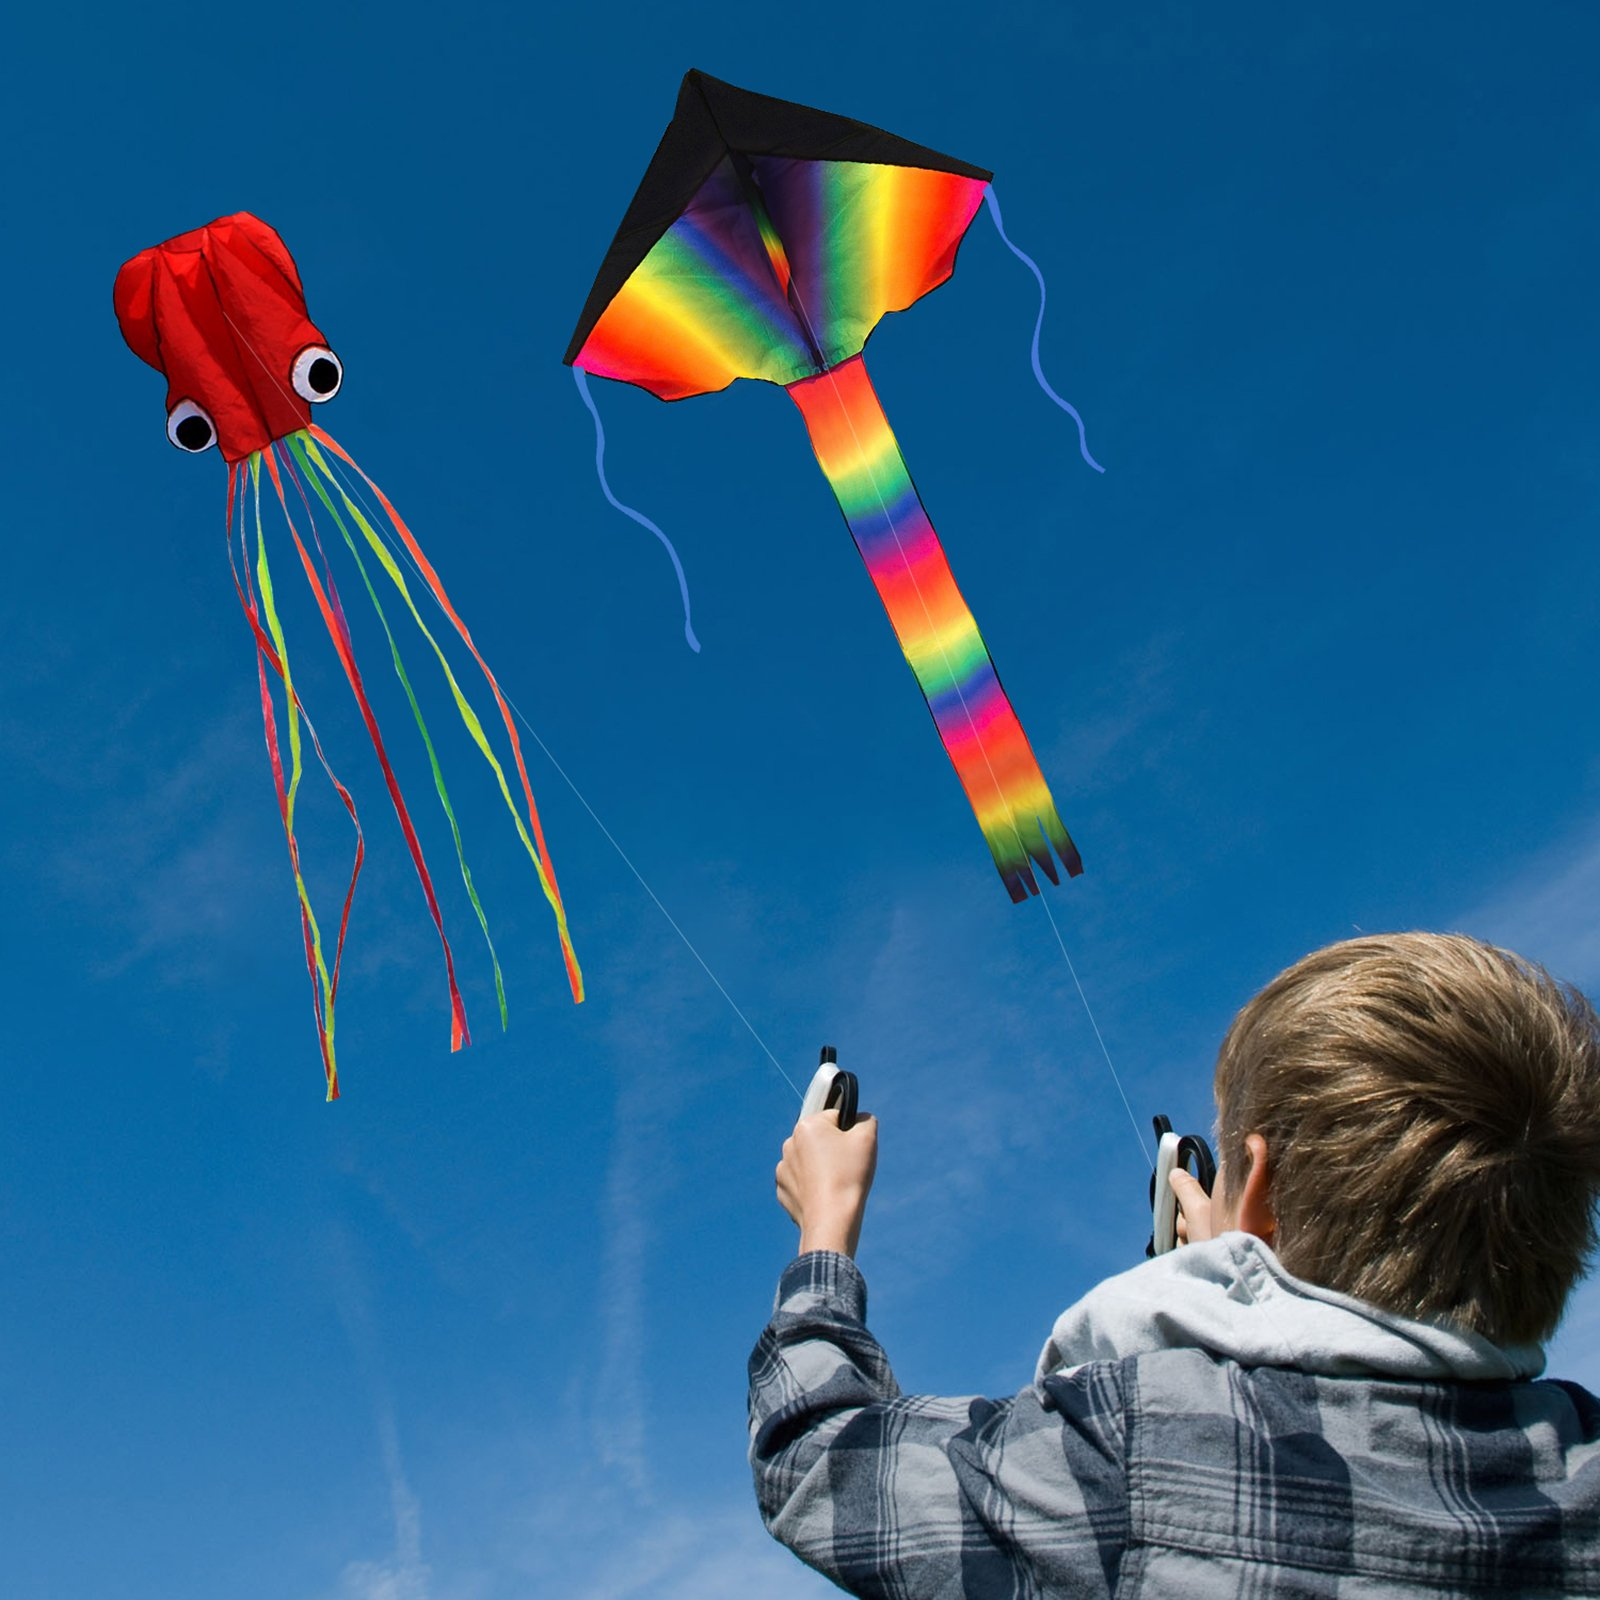 ZoomSky 2 Pack Kites - Large Rainbow Delta Kite and Red Mollusc Octopus with Long Colorful Tail for Children Outdoor Game,Activities,Beach Trip